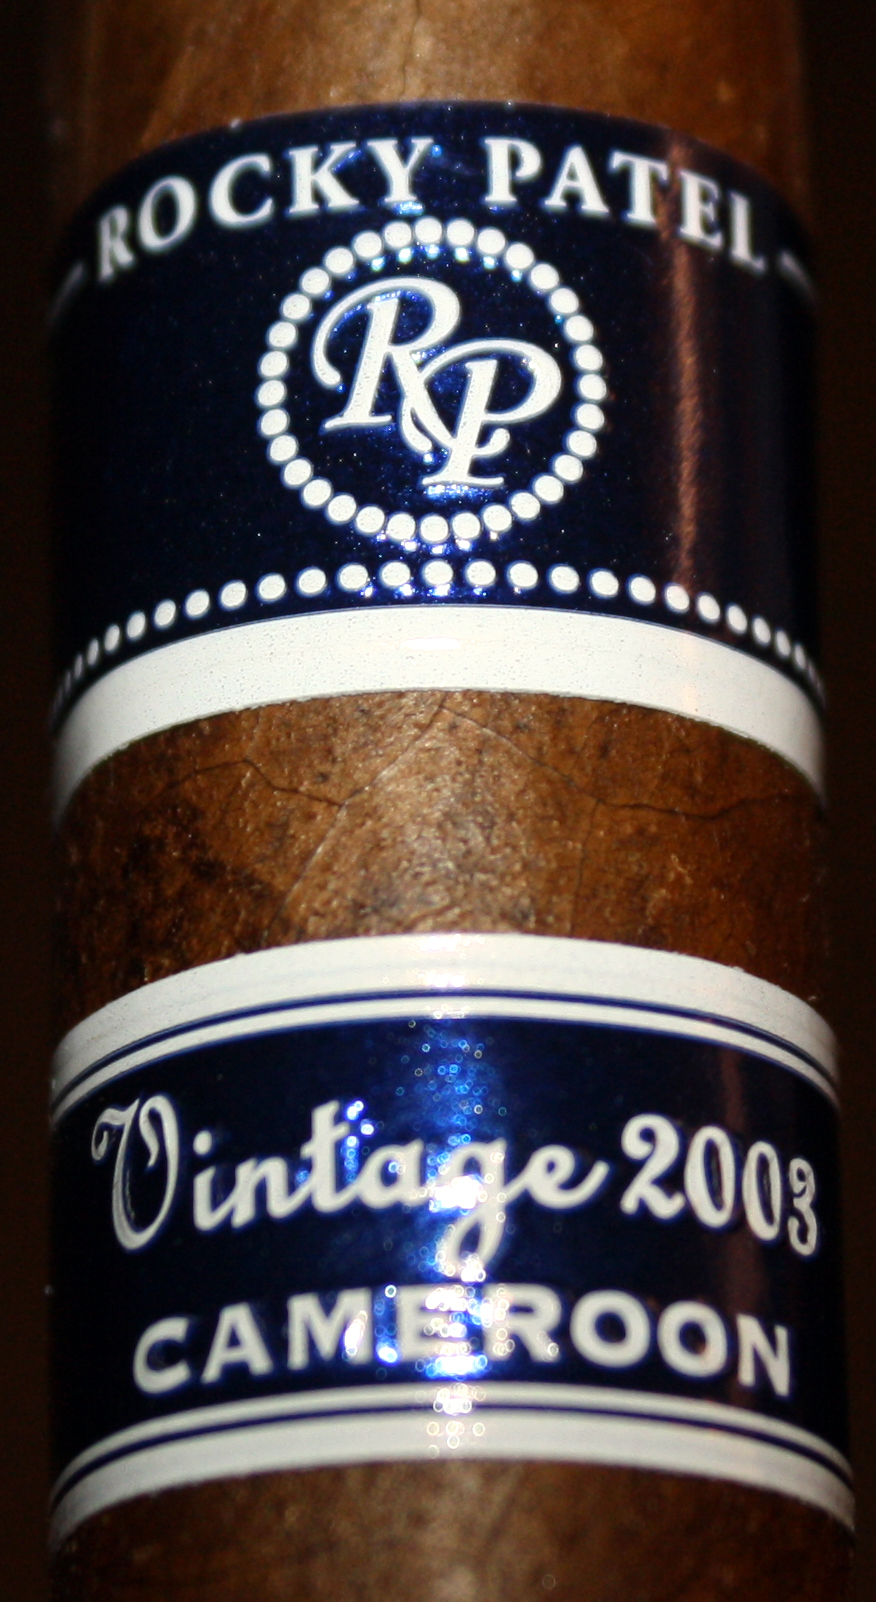 Rocky Patel Vintage 2003 Cameroon – Cigar Review